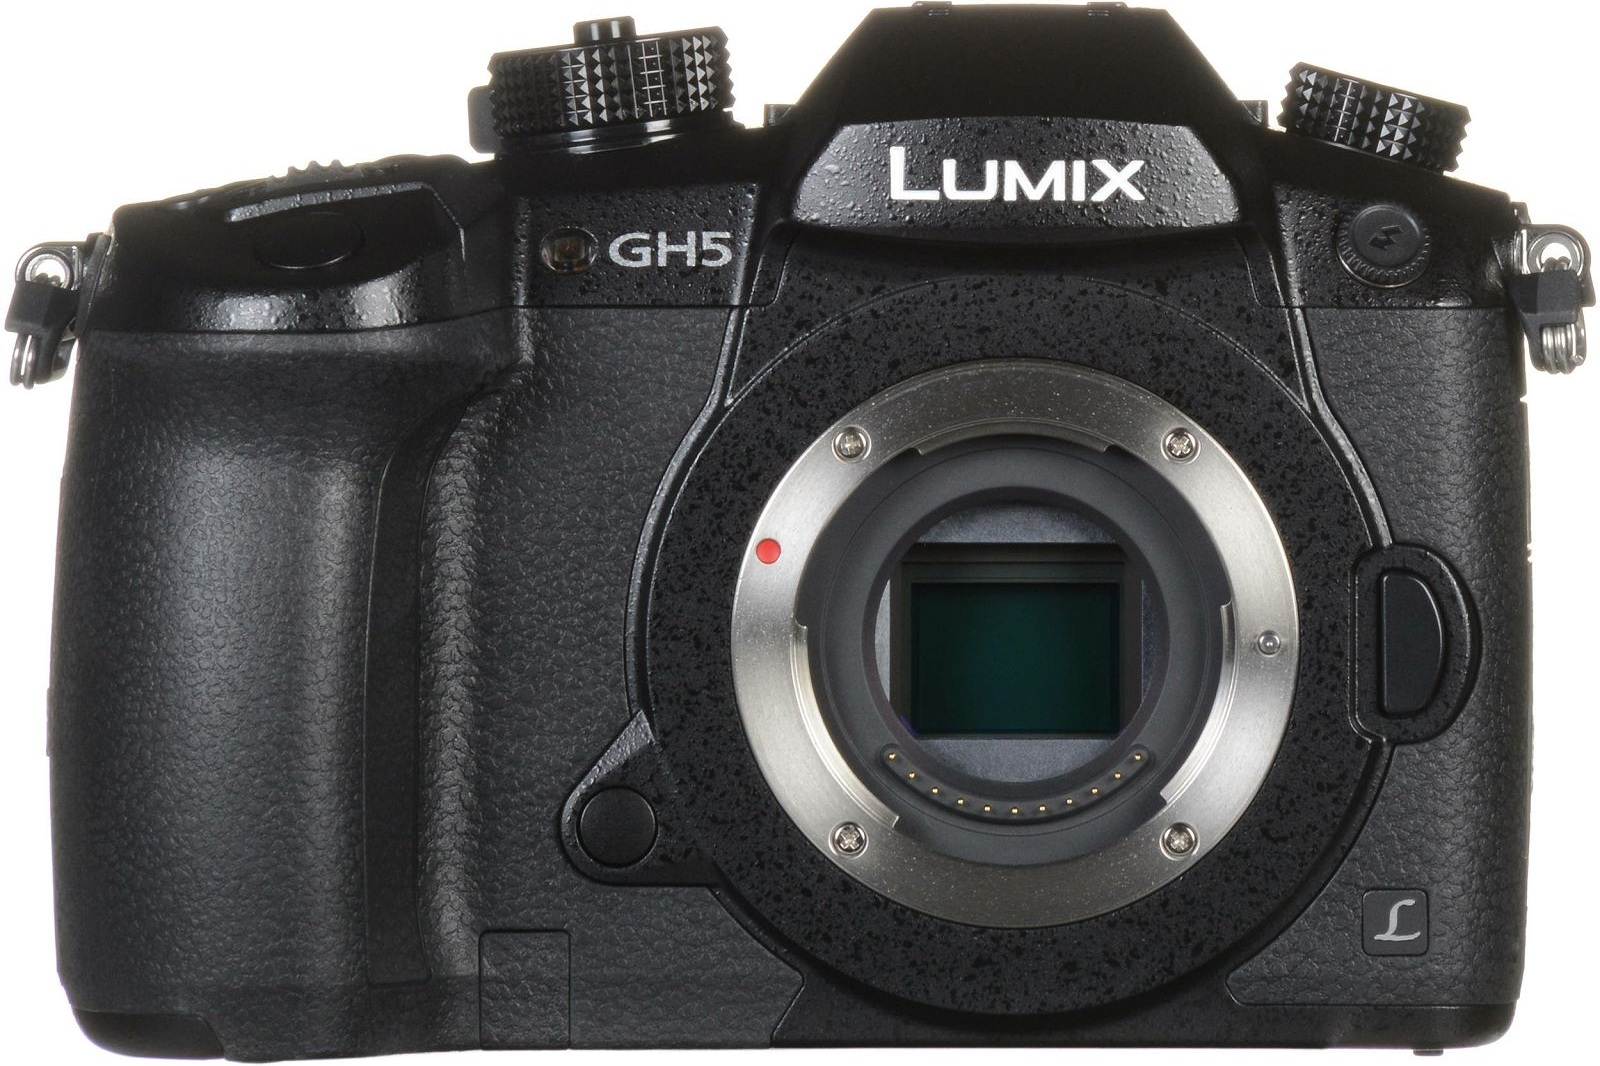 panasonic-lumix-gh5-body-4k-video-60fps--dc-gh5eg-k_12.jpg